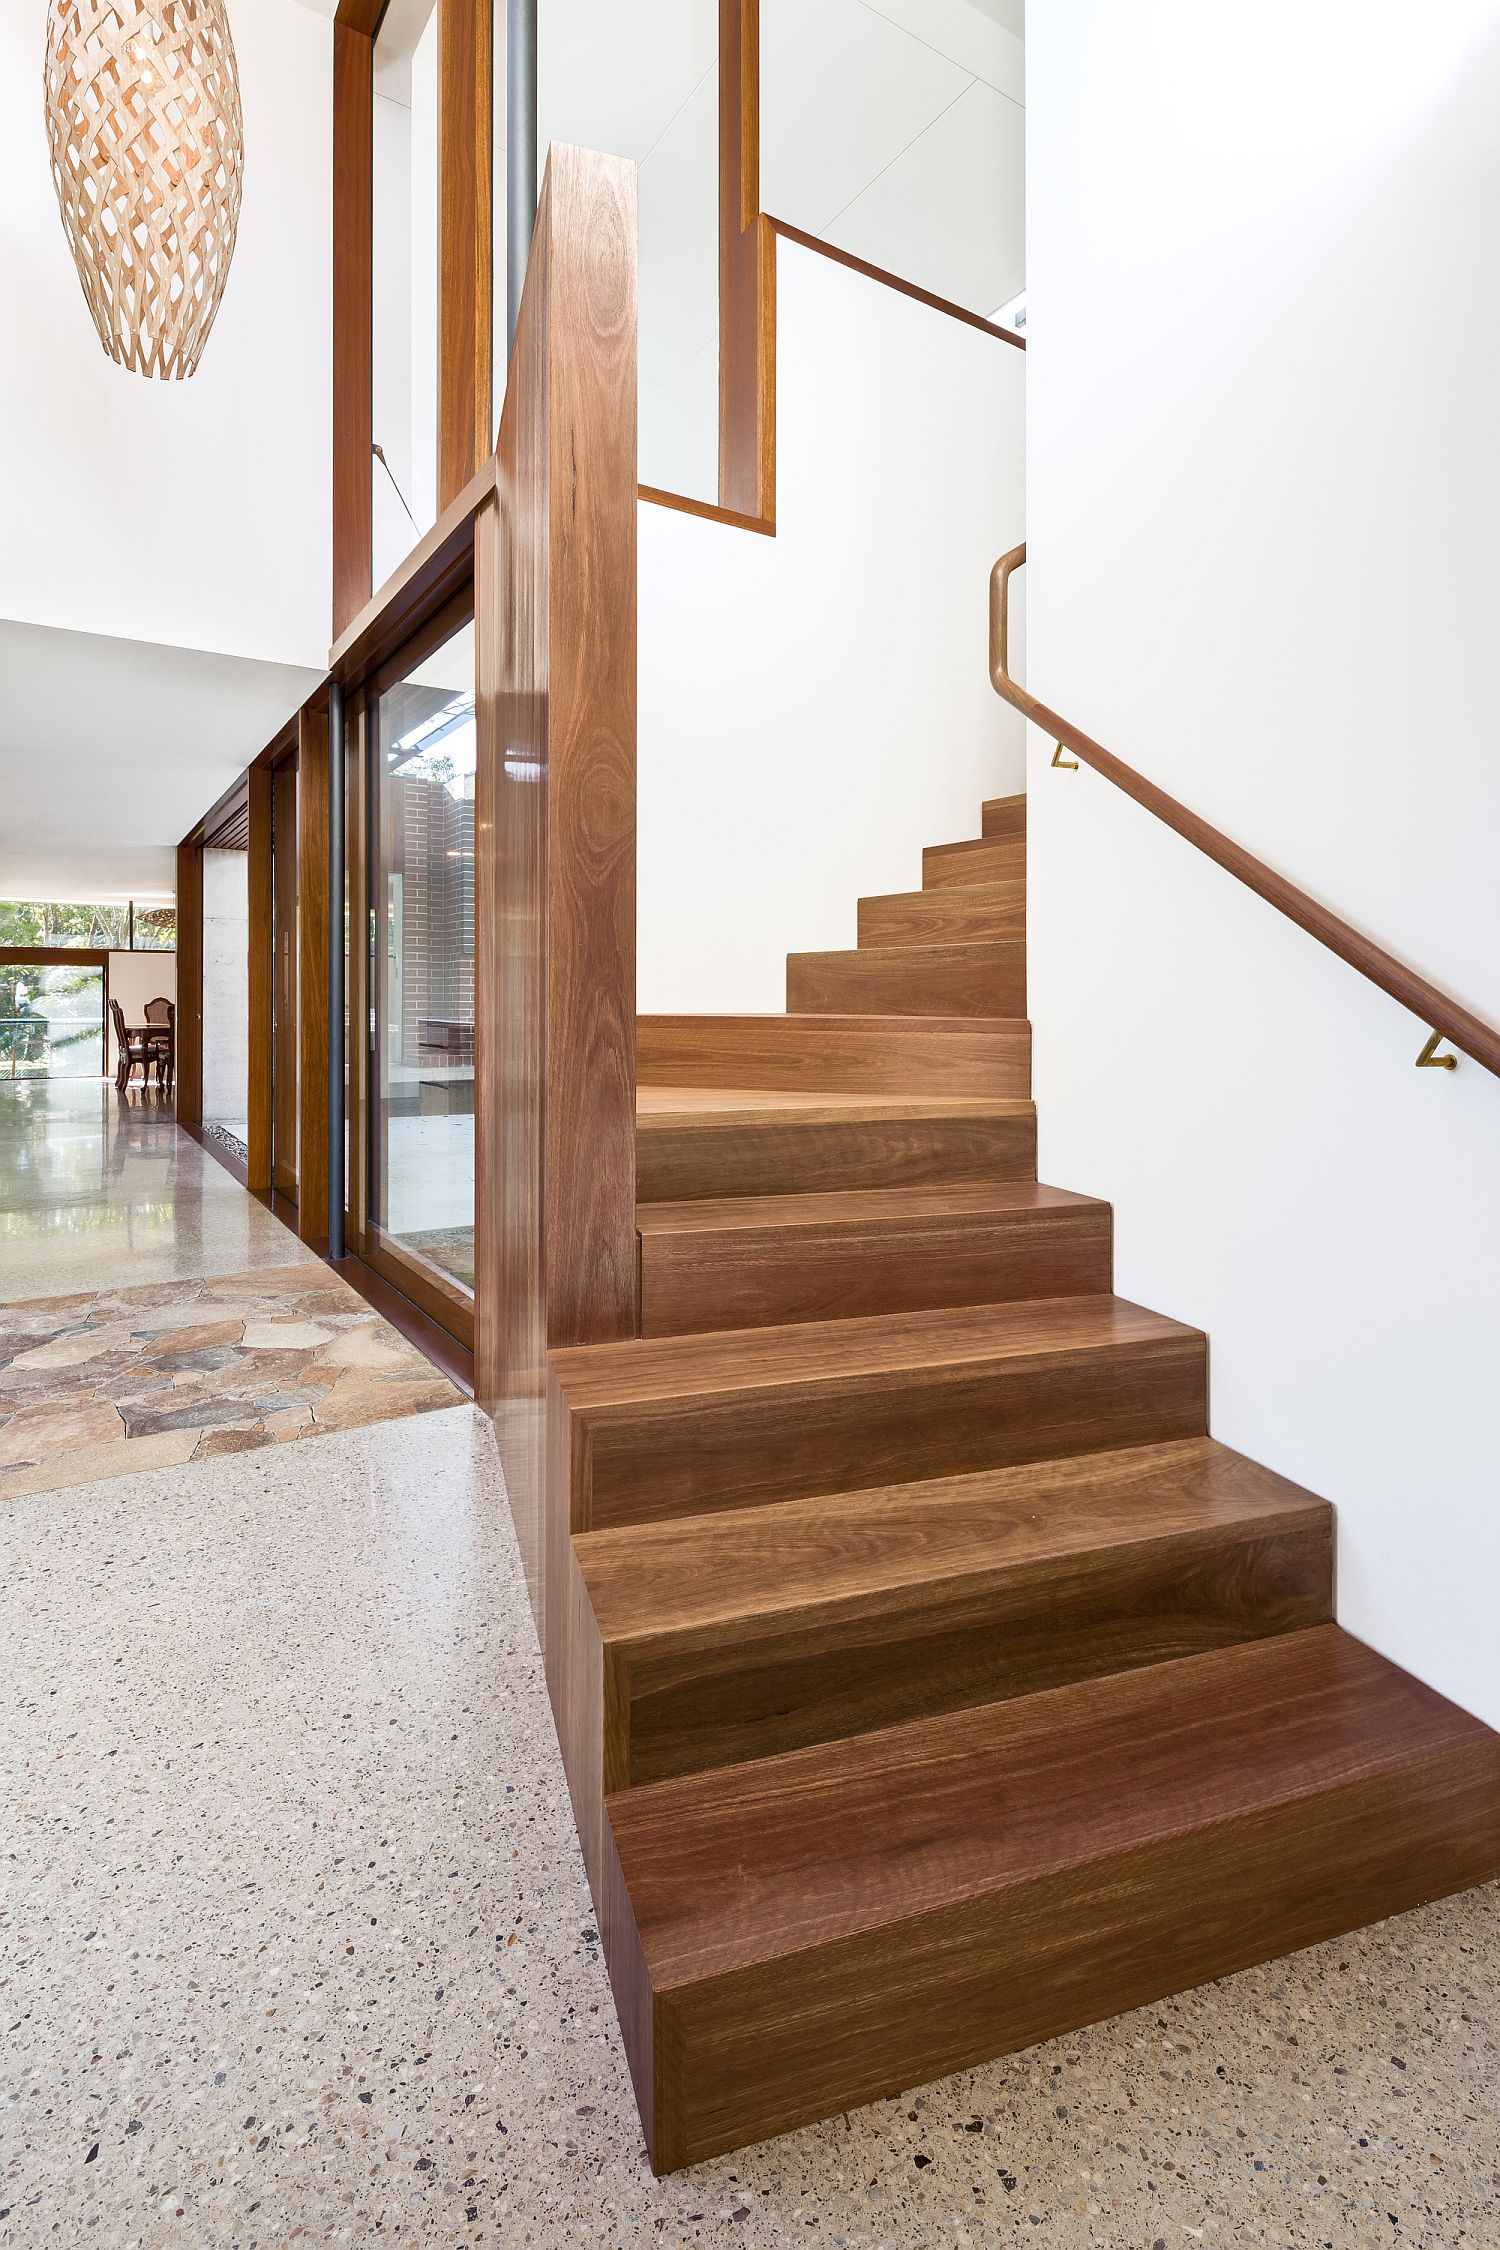 Wooden-stairway-connects-the-lower-living-area-with-the-bedrooms